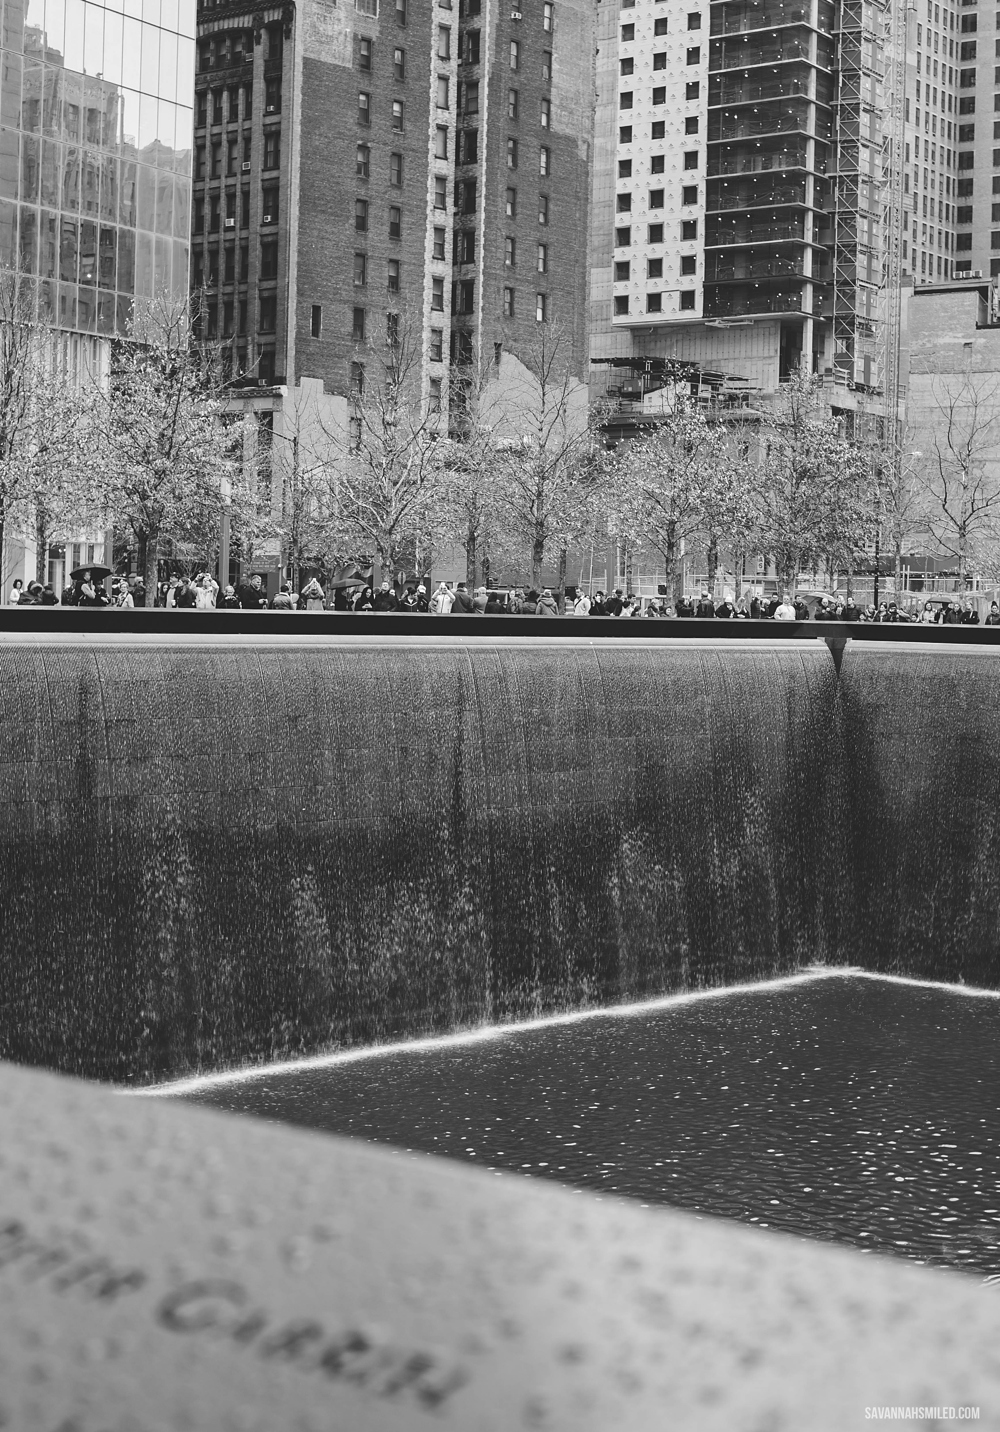 911-new-york-city-memorial-pools-5.jpg